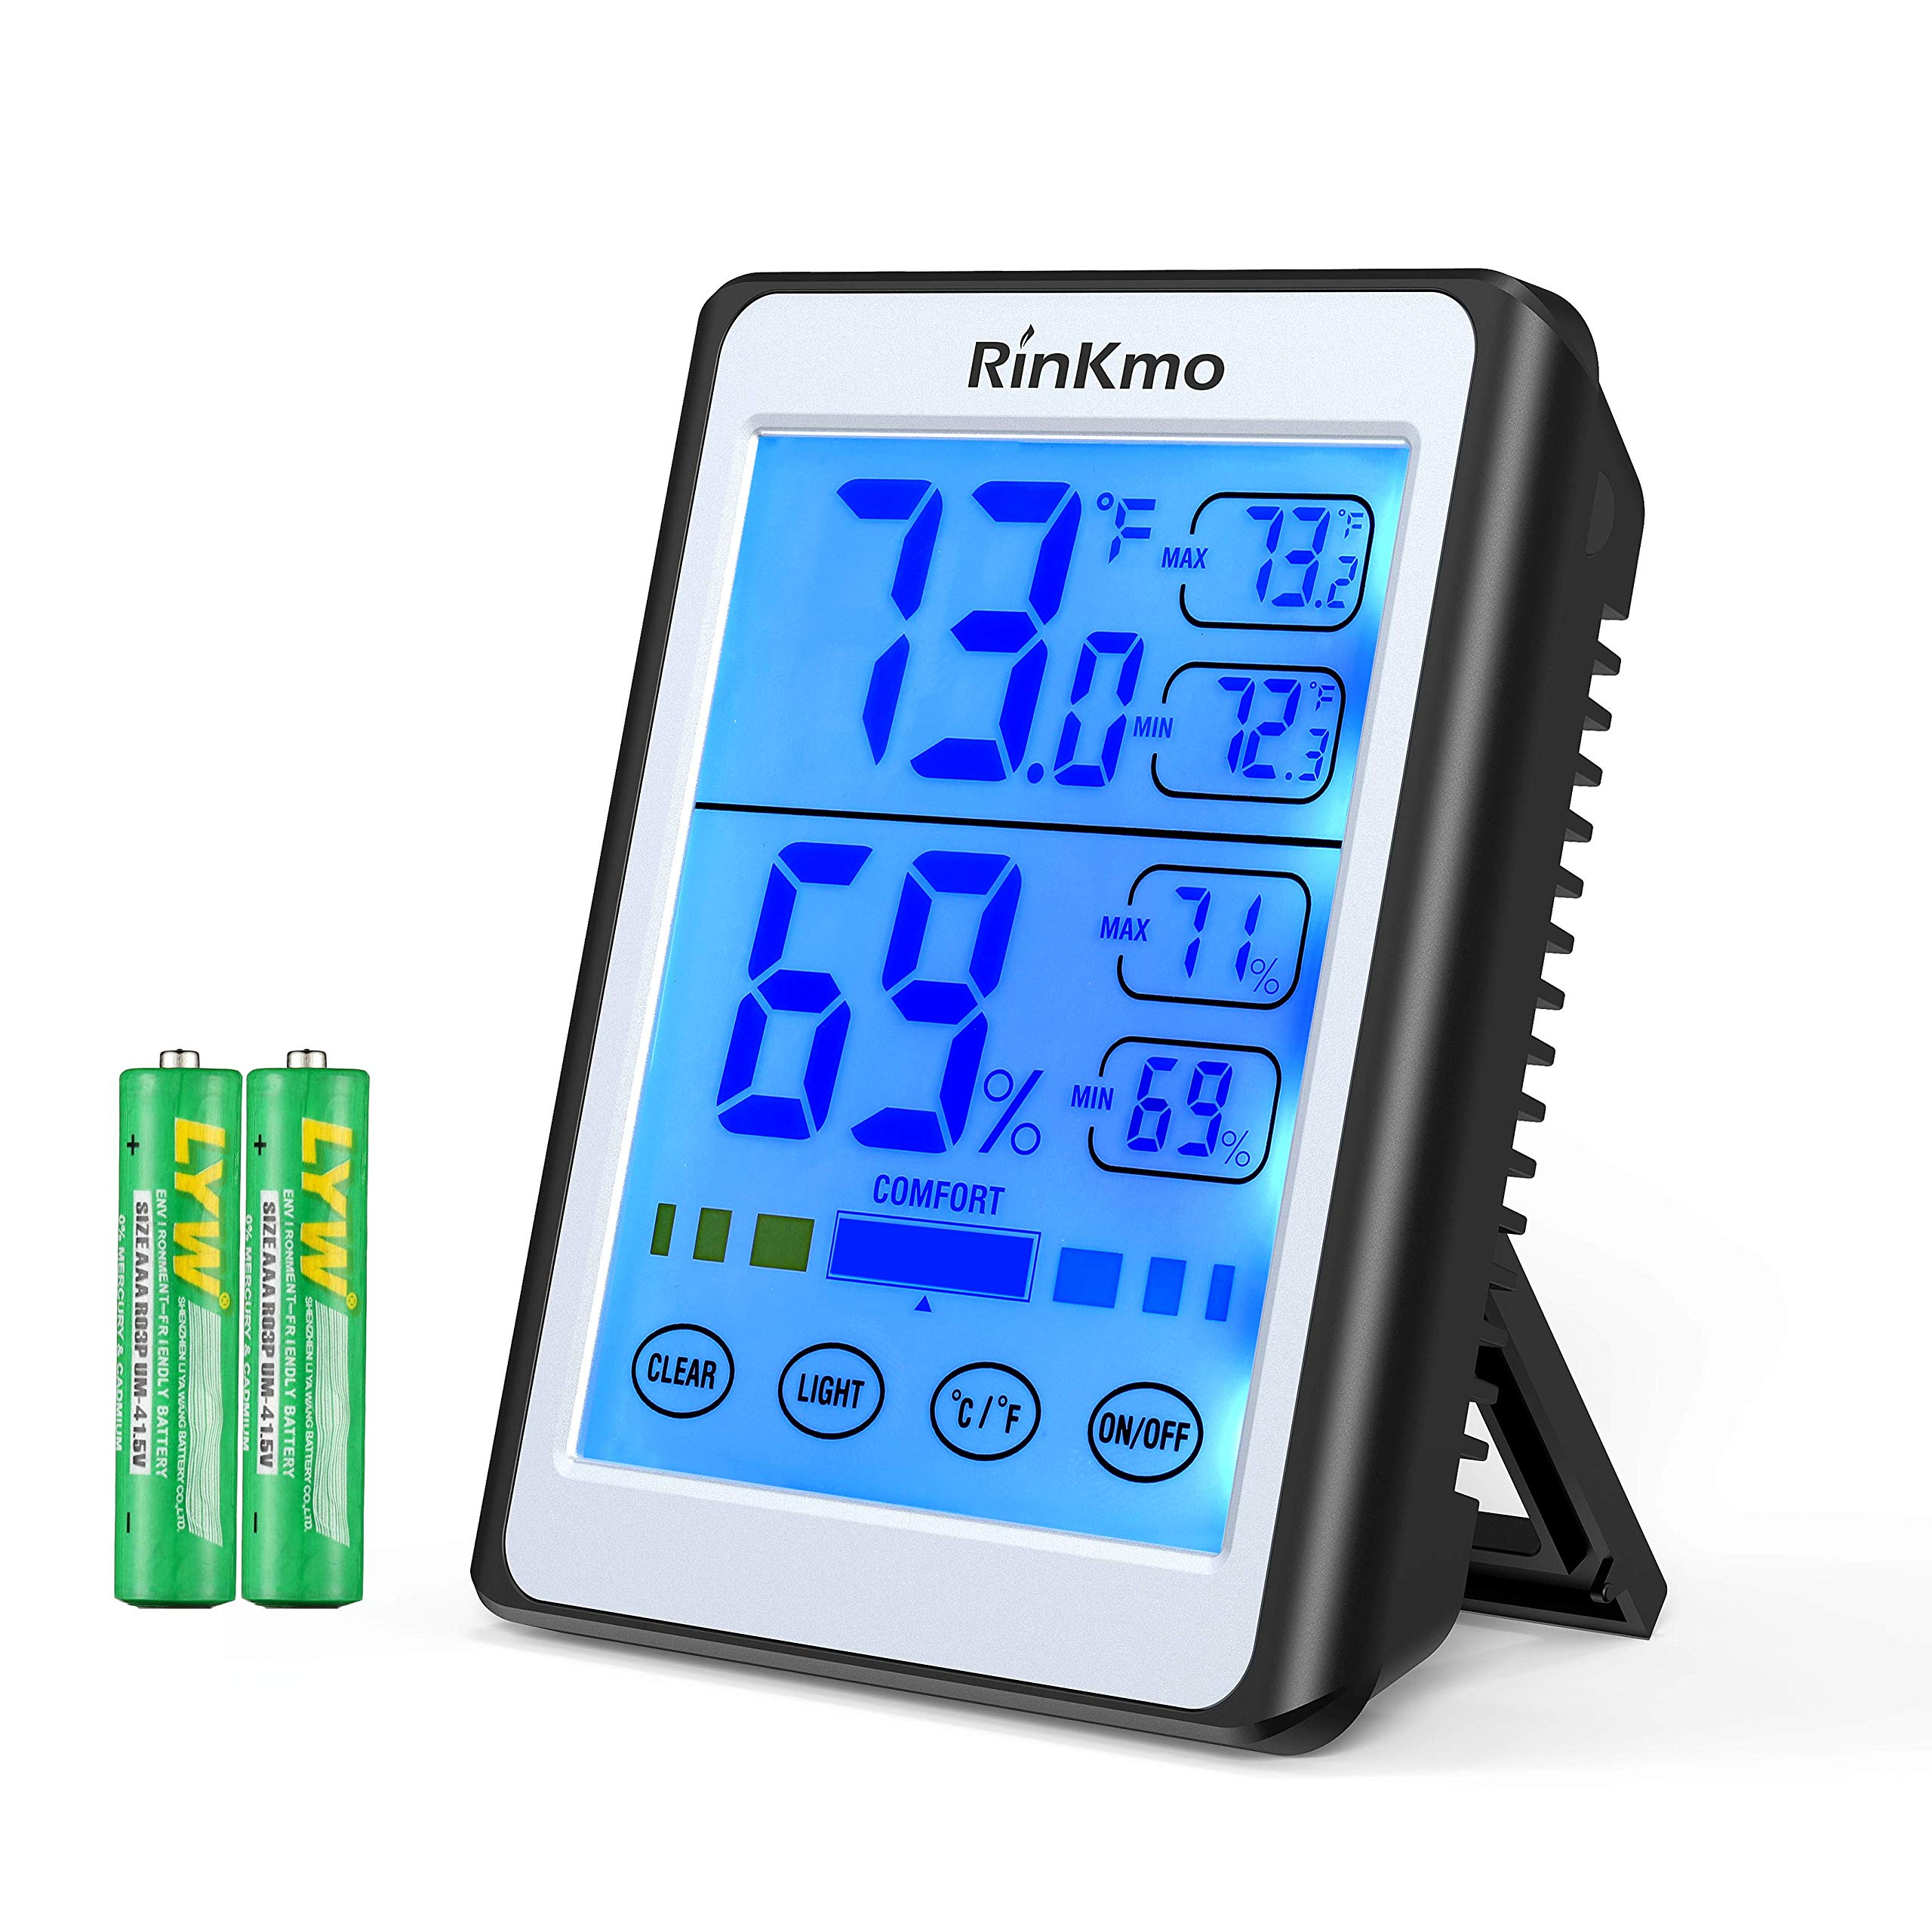 RINKMO Digital Hygrometer Indoor Thermometer Accurate Humidity Guage and Temperature Indicator, Touch LCD Backlight Humidity Monitor, Wall Mount & Desktop Hygrometer by RINKMO